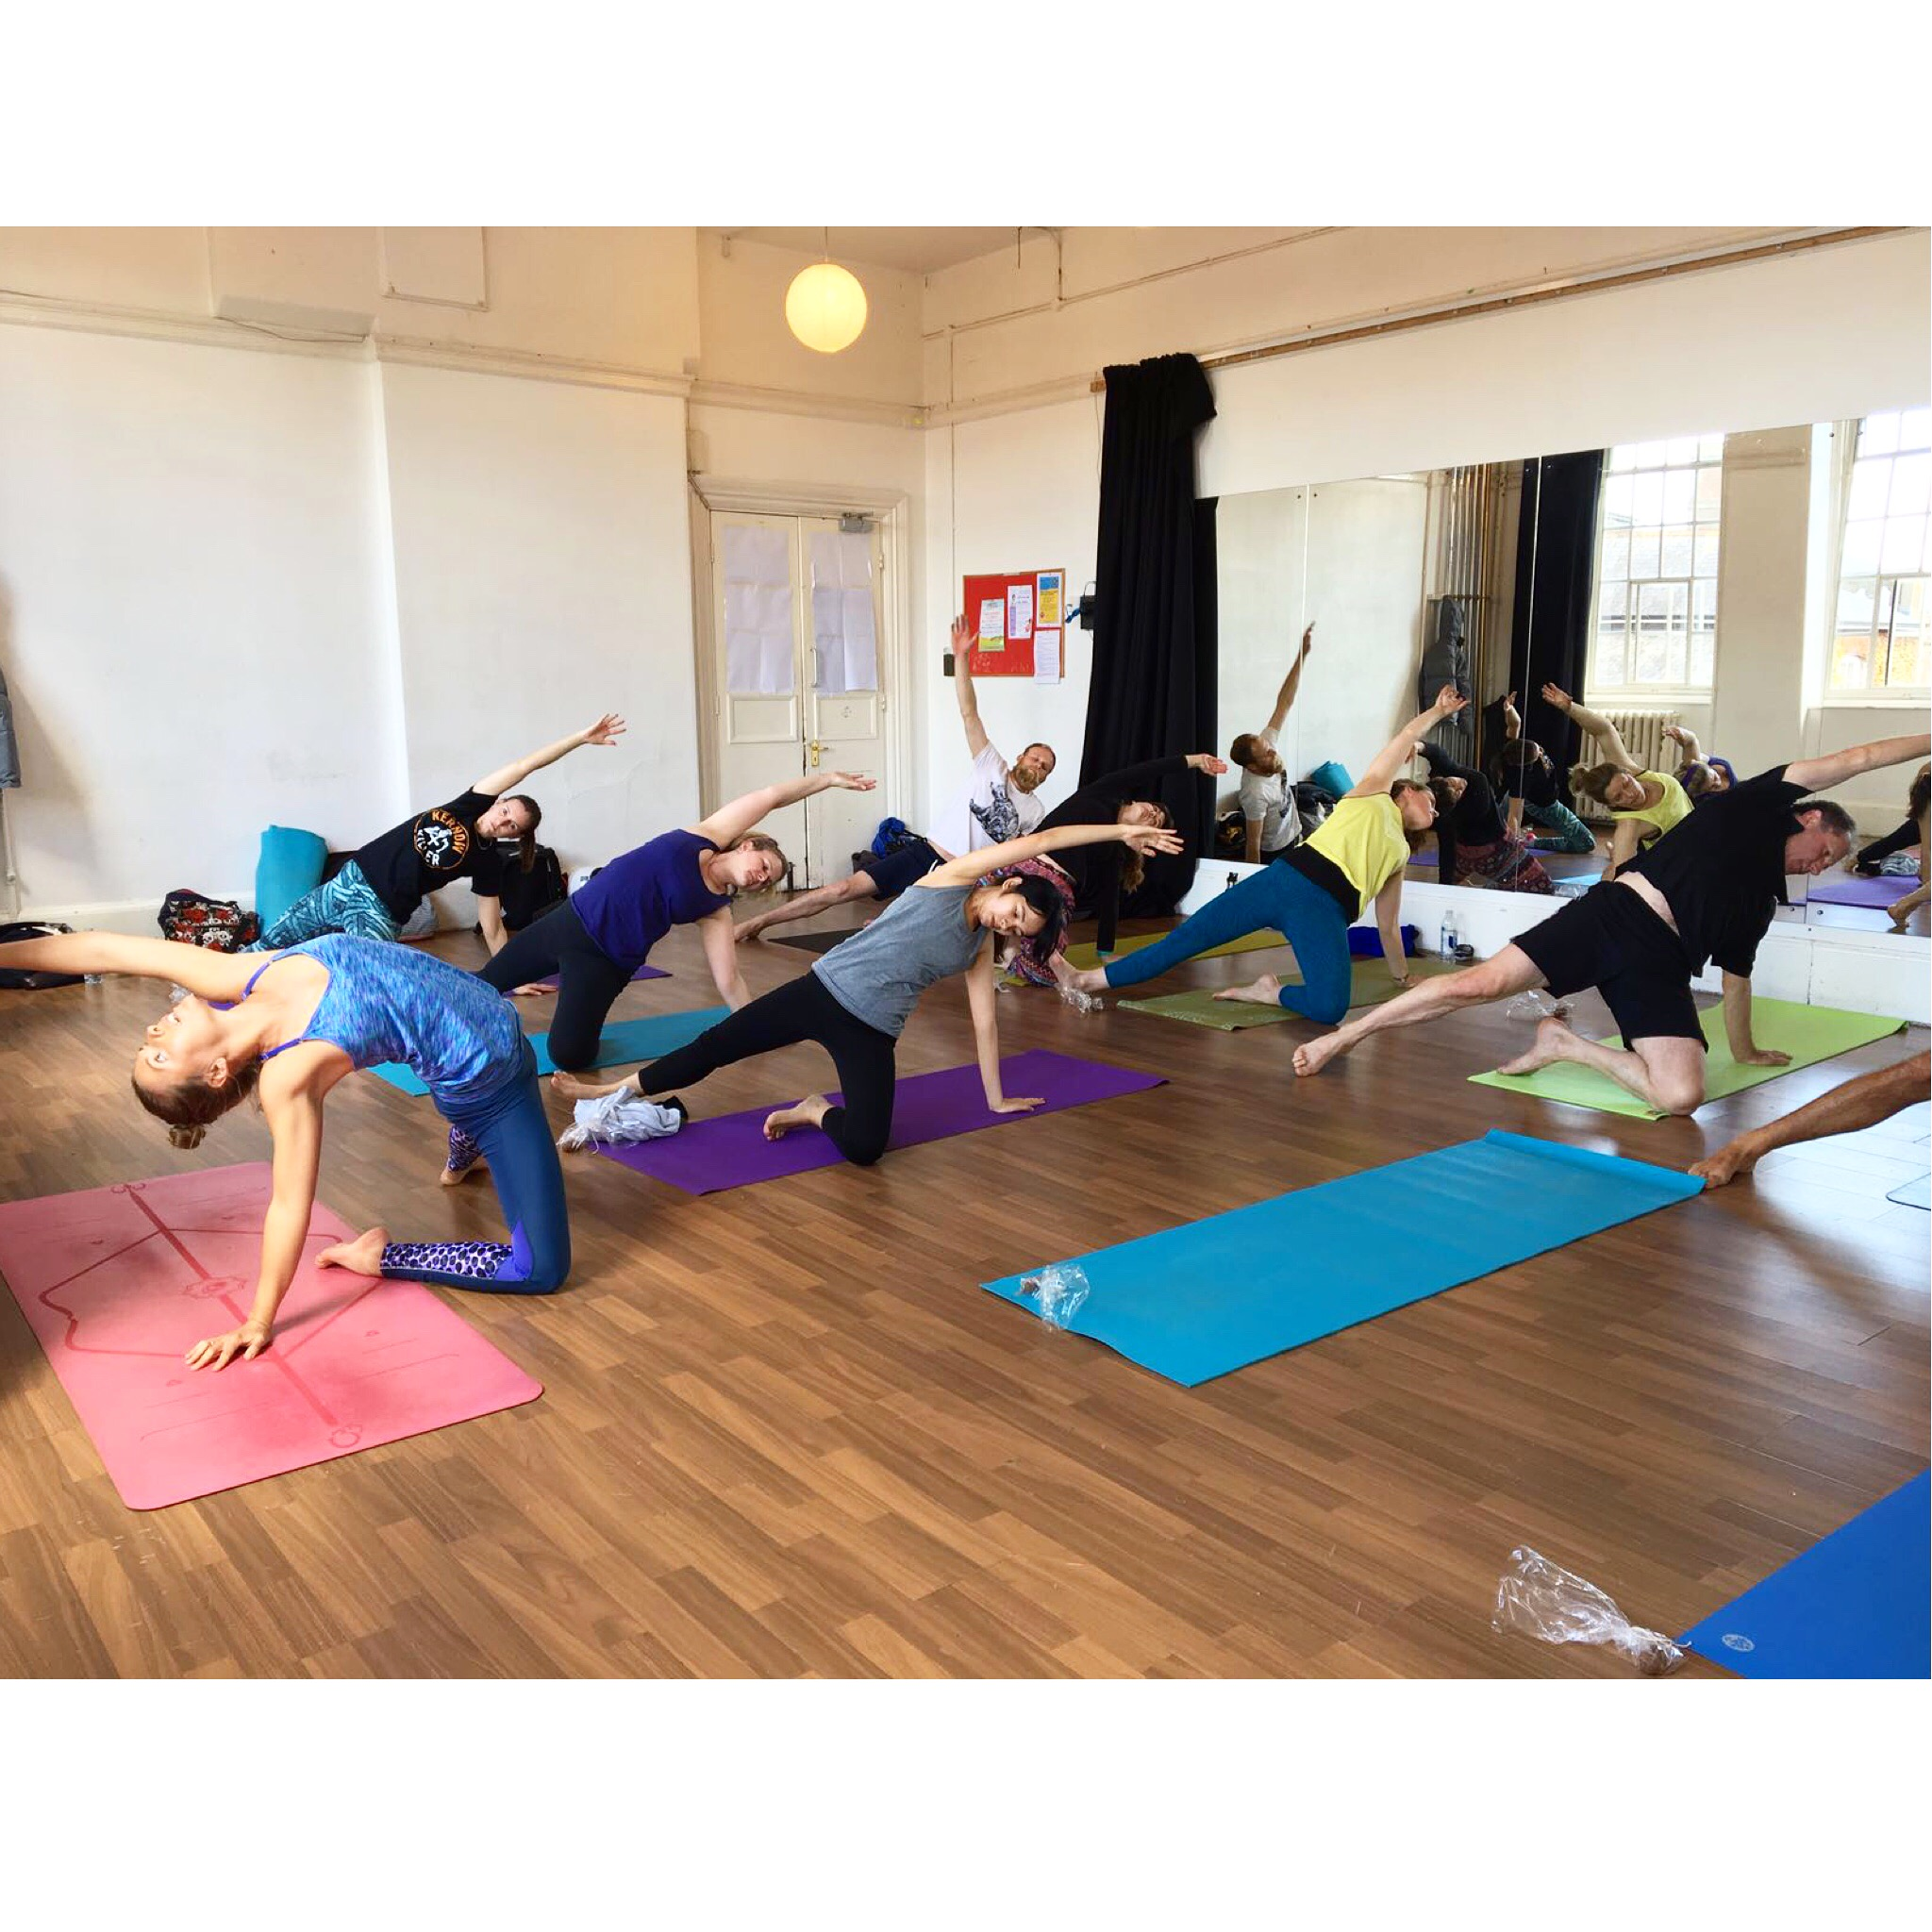 21.05 EXETER YOGA BRUNCH